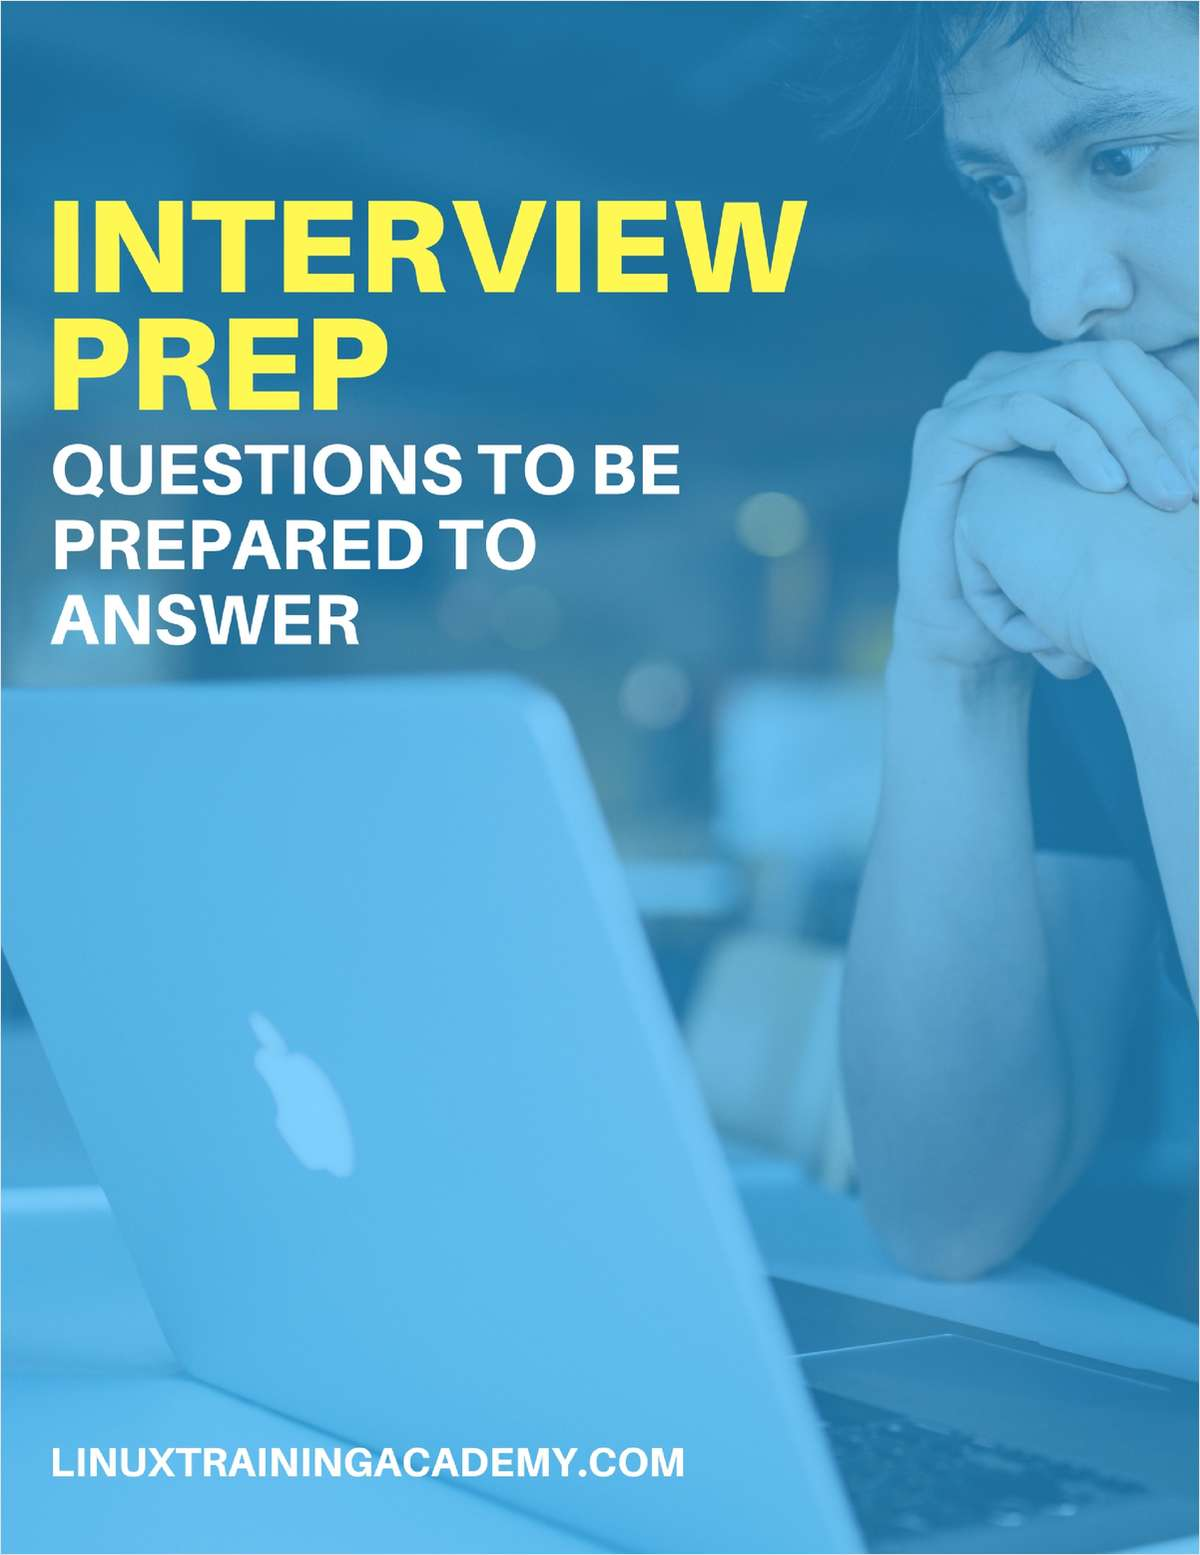 Interview​ ​Prep - ​Questions​ ​to​ ​Be​ ​Prepared​ ​to​ ​Answer